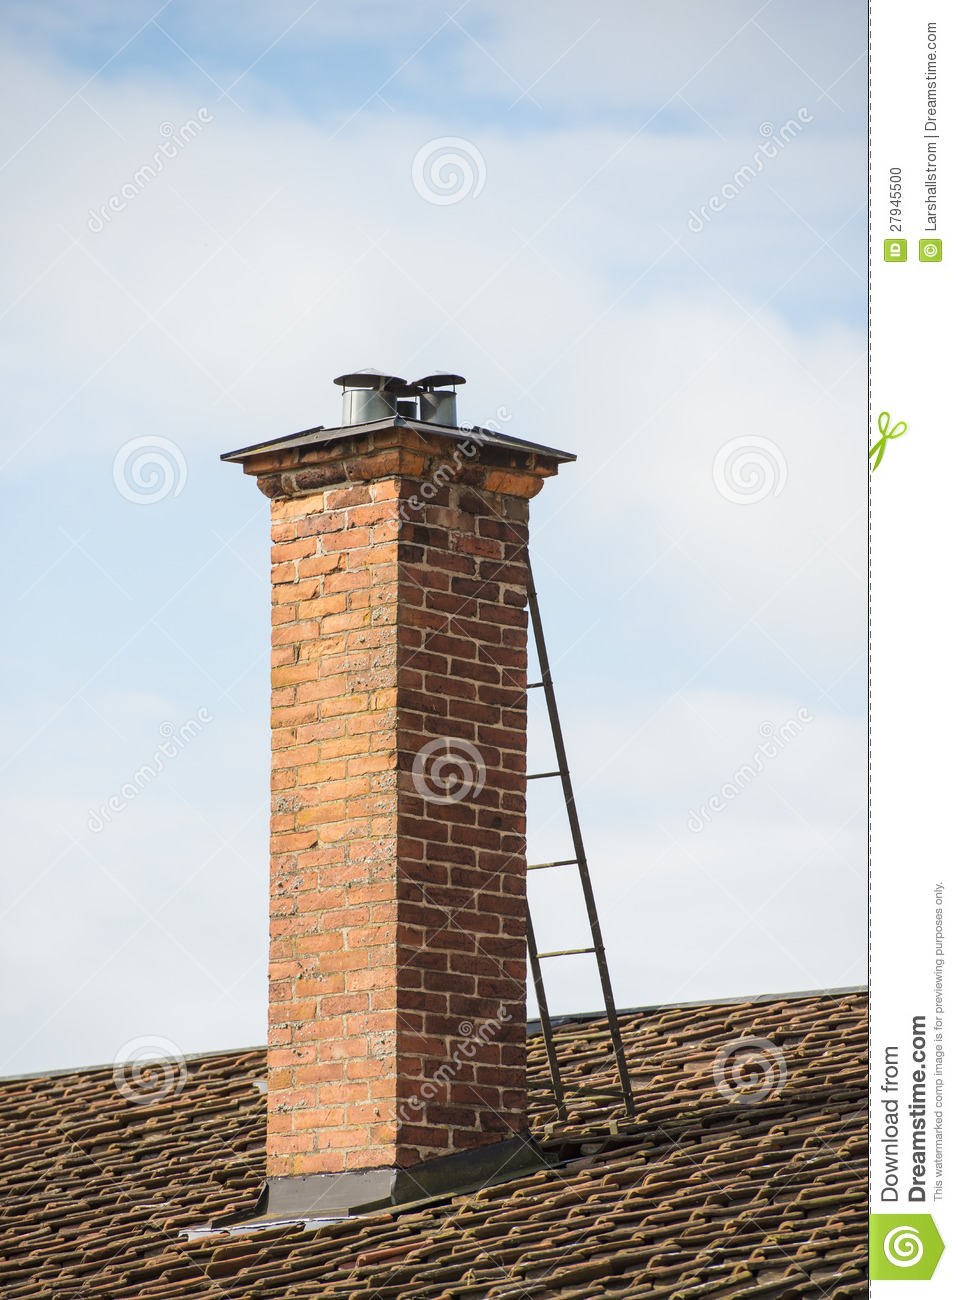 Red Brick Chimney On Roof Of Old House Stock Photo - Image ...